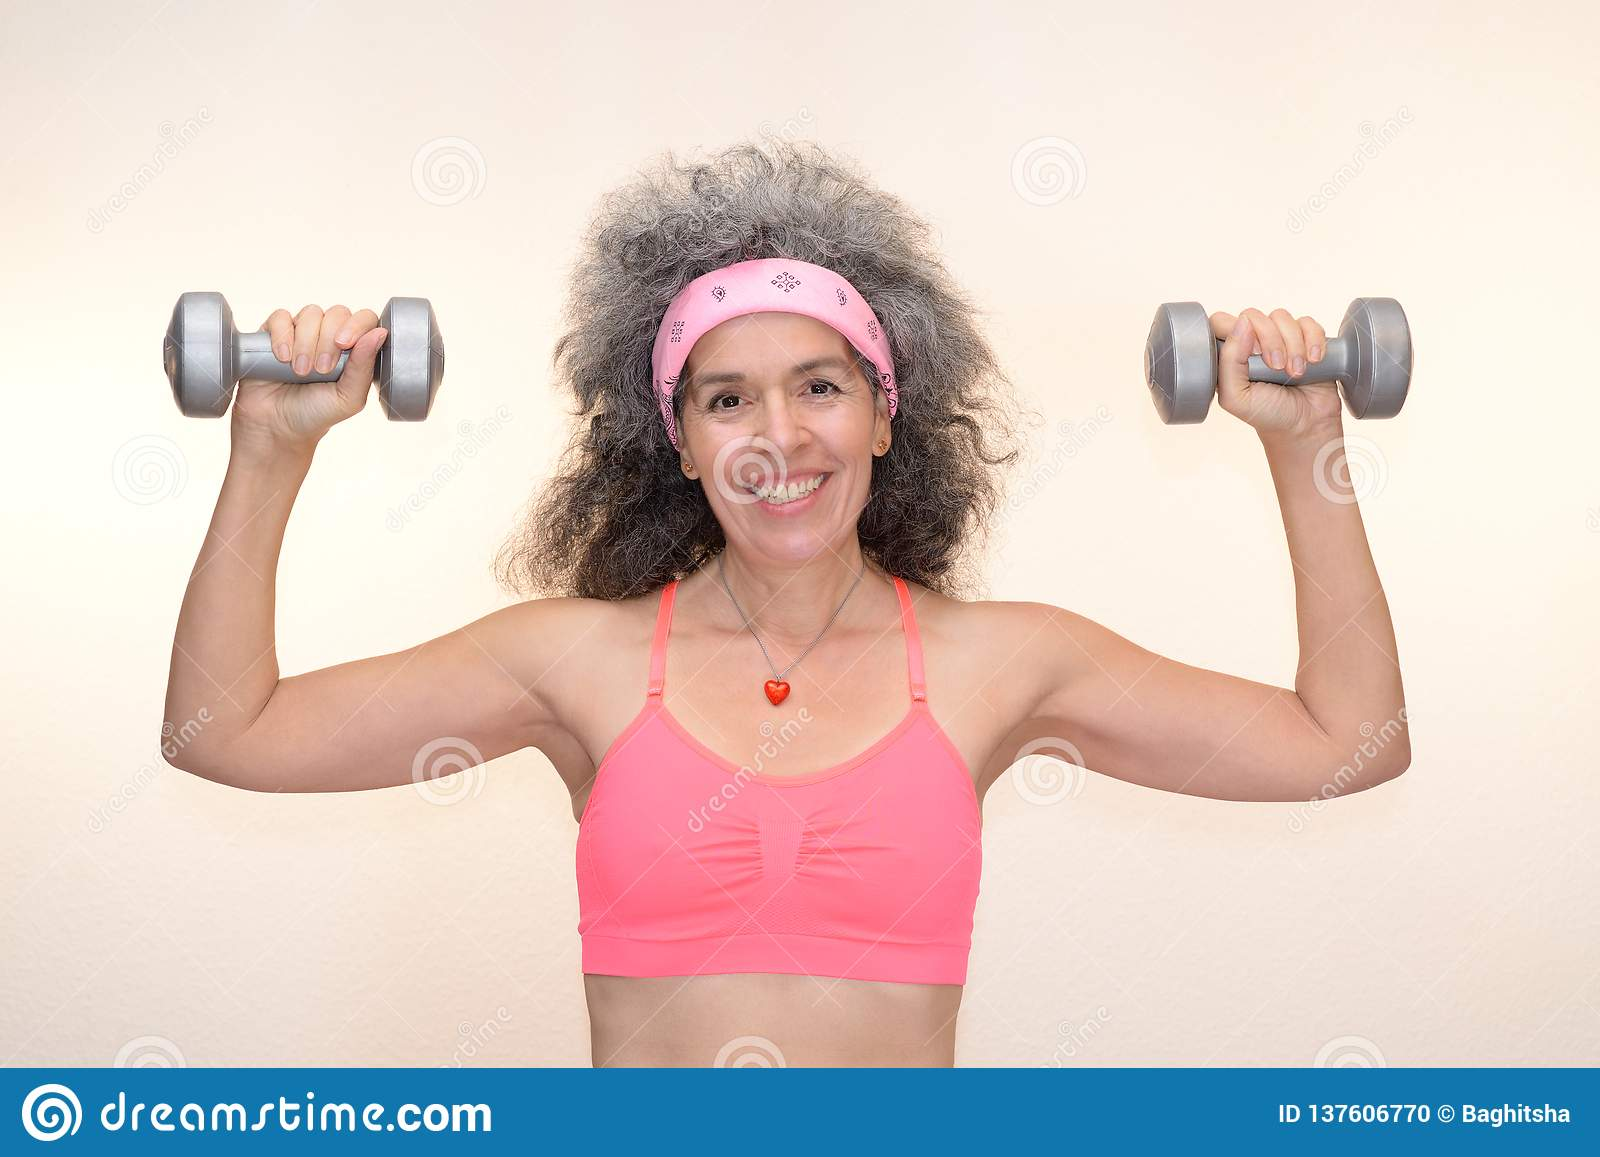 A Smiling Woman Over Fifty In Gym Outfit Is Holding Up Dumbbells Bandana Sweatband Grey Hair Plain Background